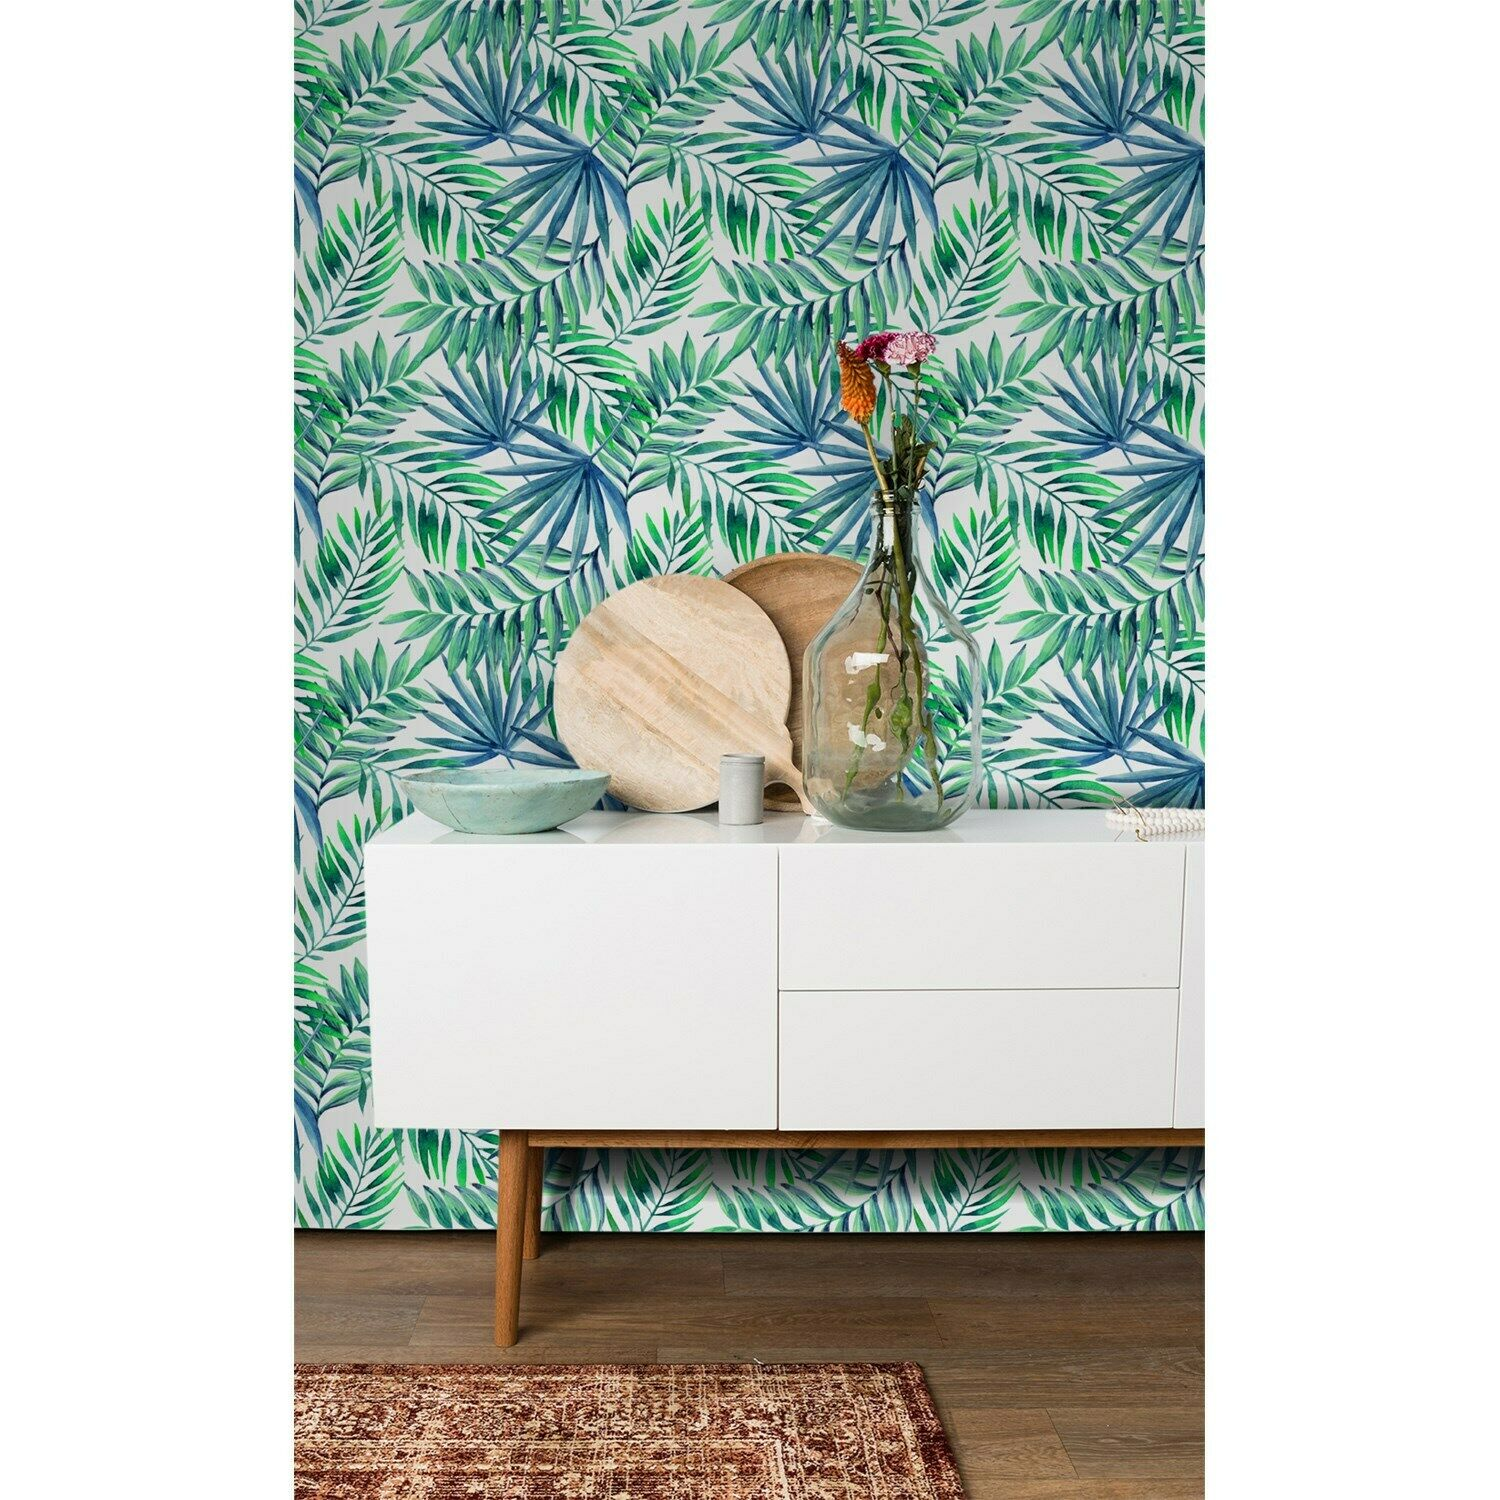 Non-Woven wallpaper Palm leaves pattern Home Mural Exotic Tropical WaterFarbe